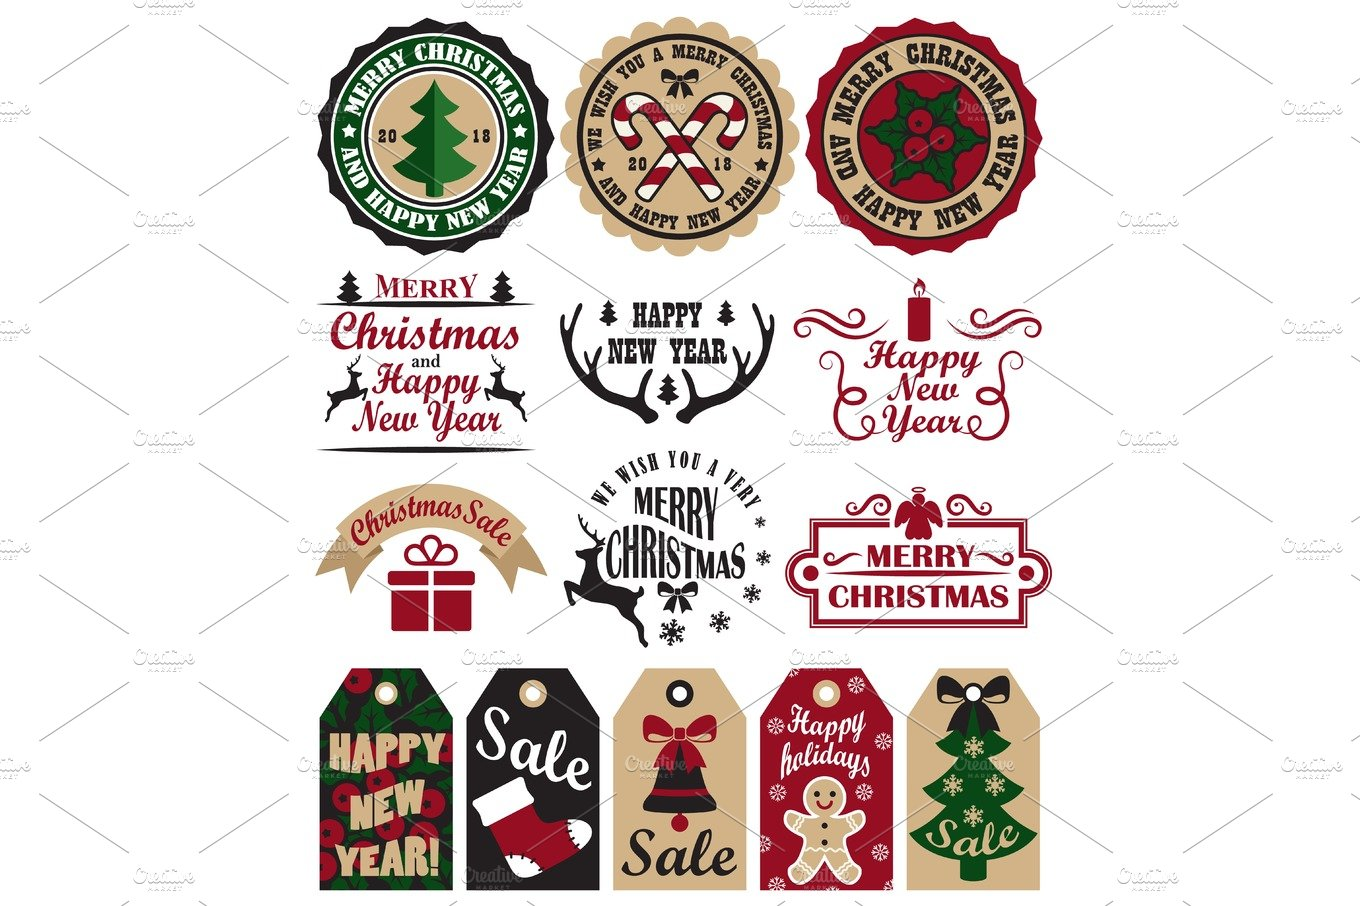 Merry Christmas Symbols Vector Illustration Set ~ Graphic Objects ...